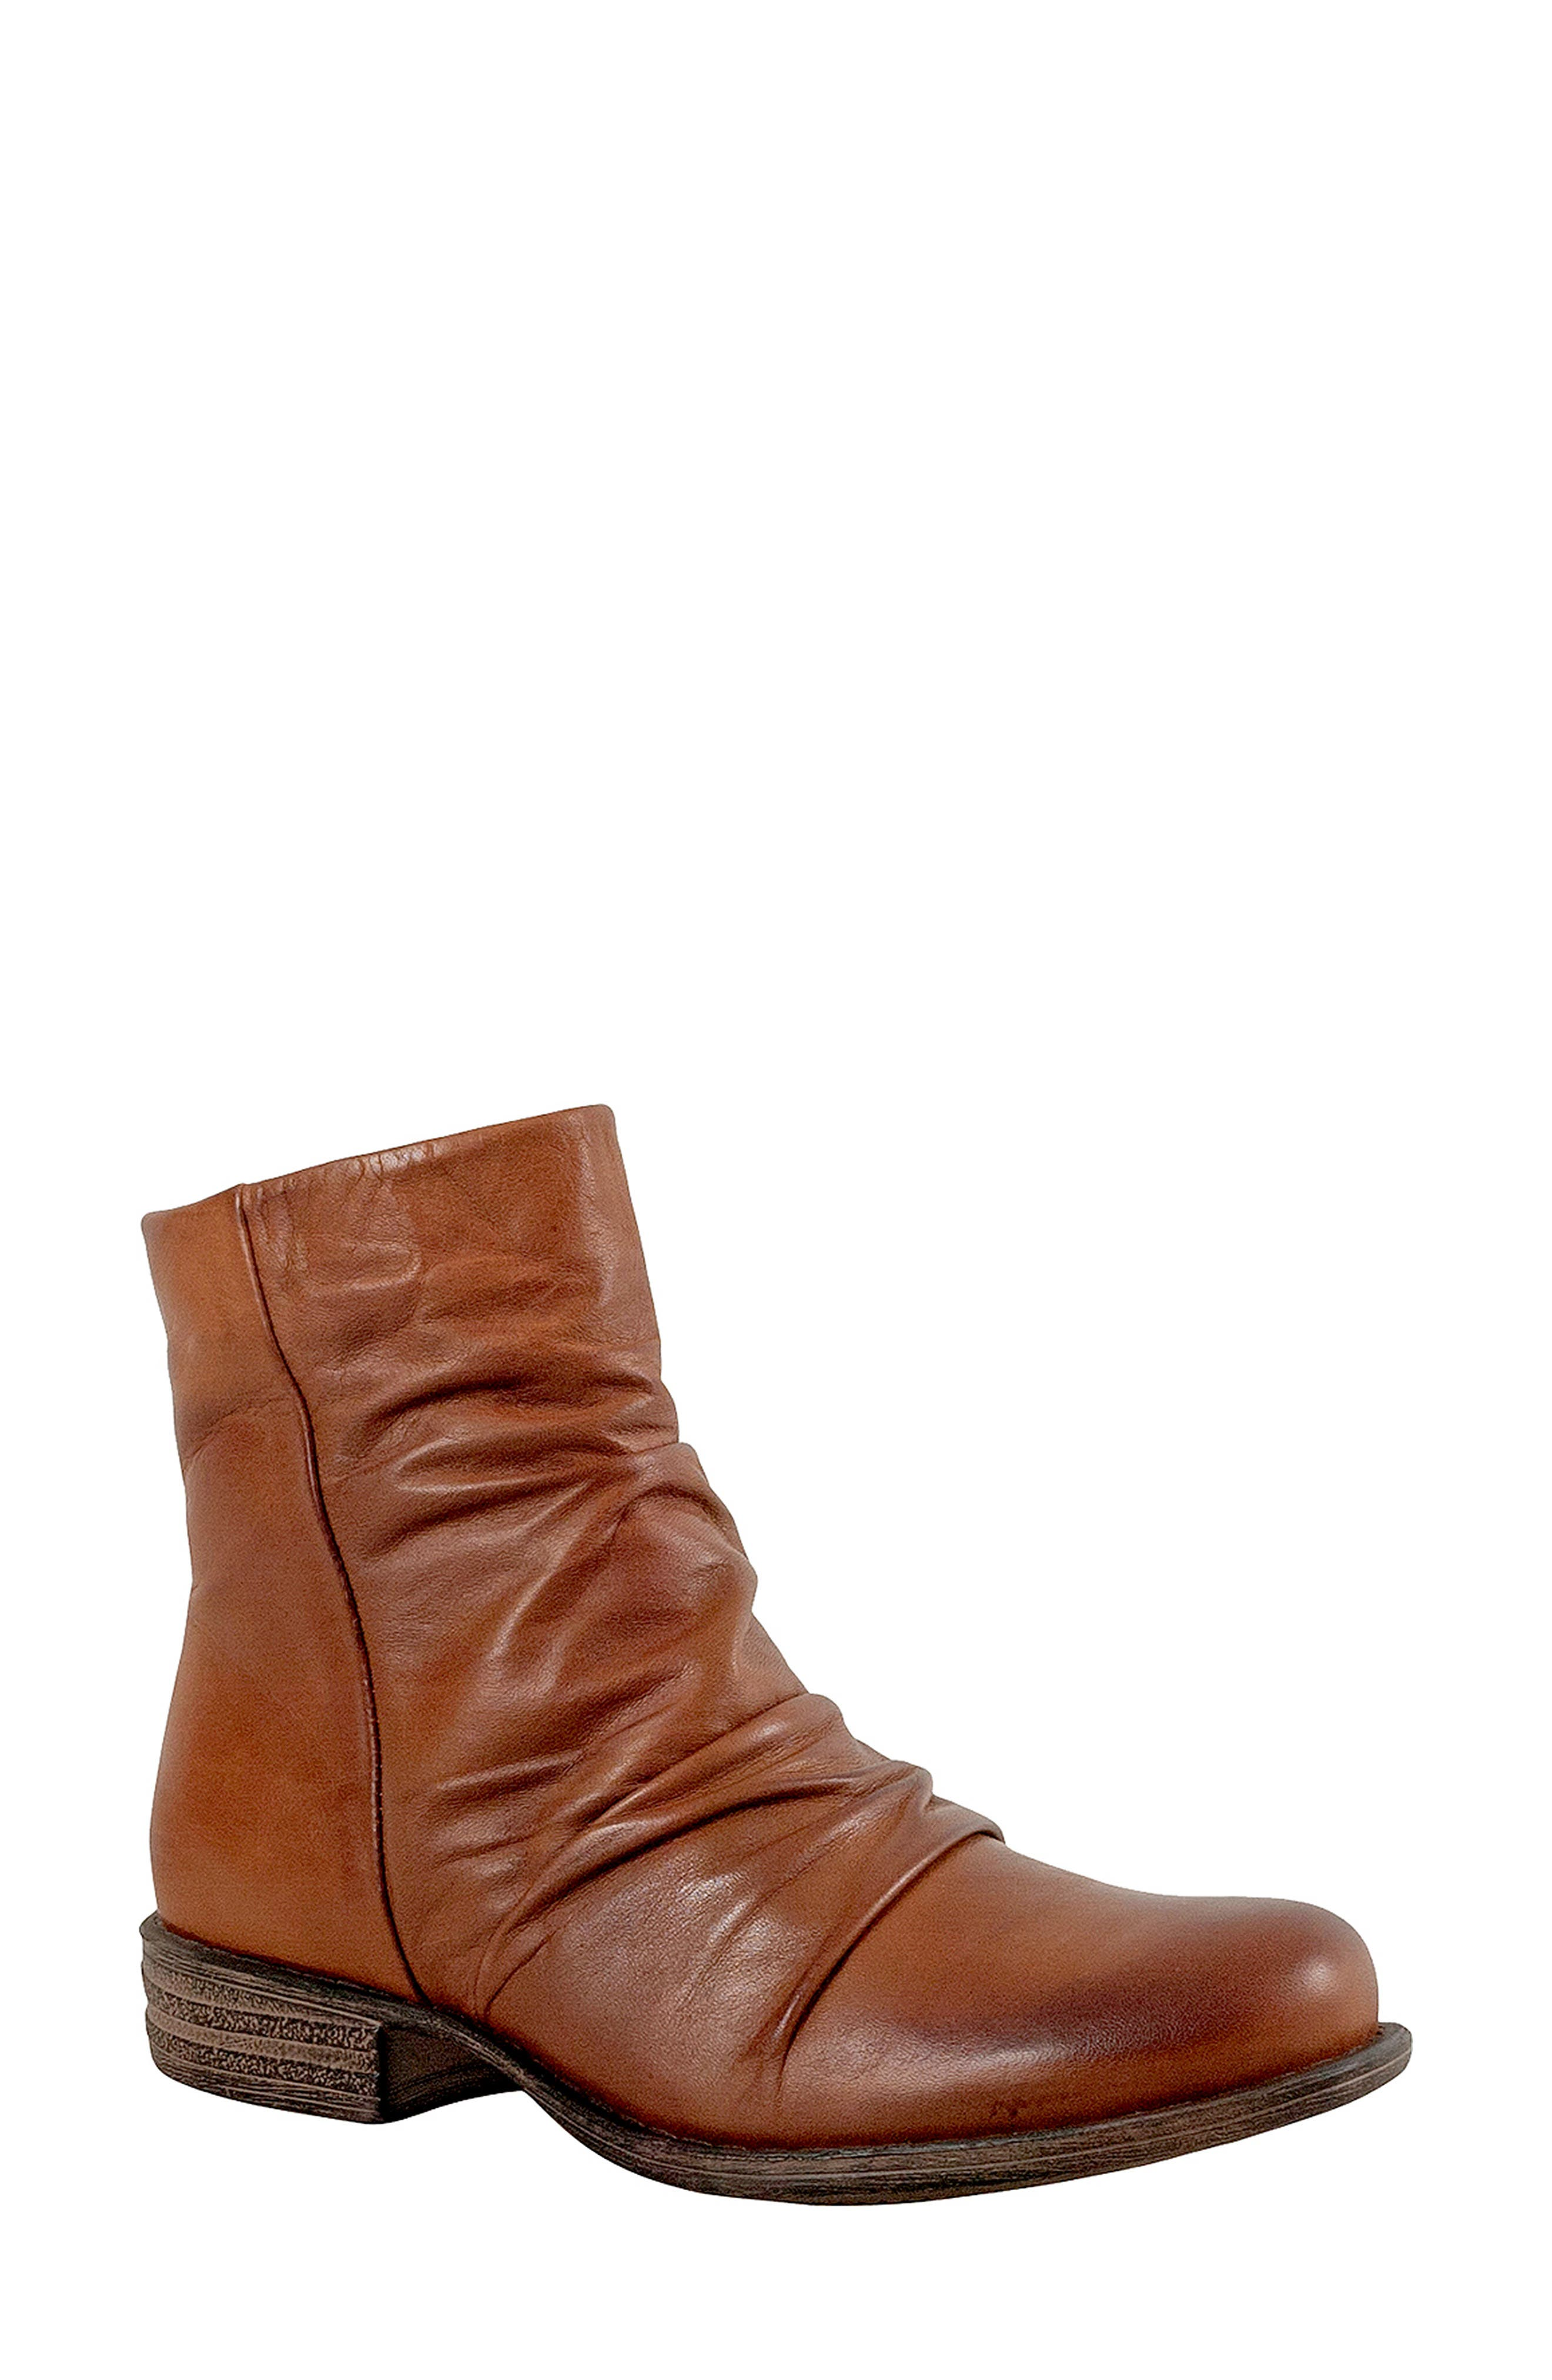 Lane Bootie,                         Main,                         color, BRANDY LEATHER